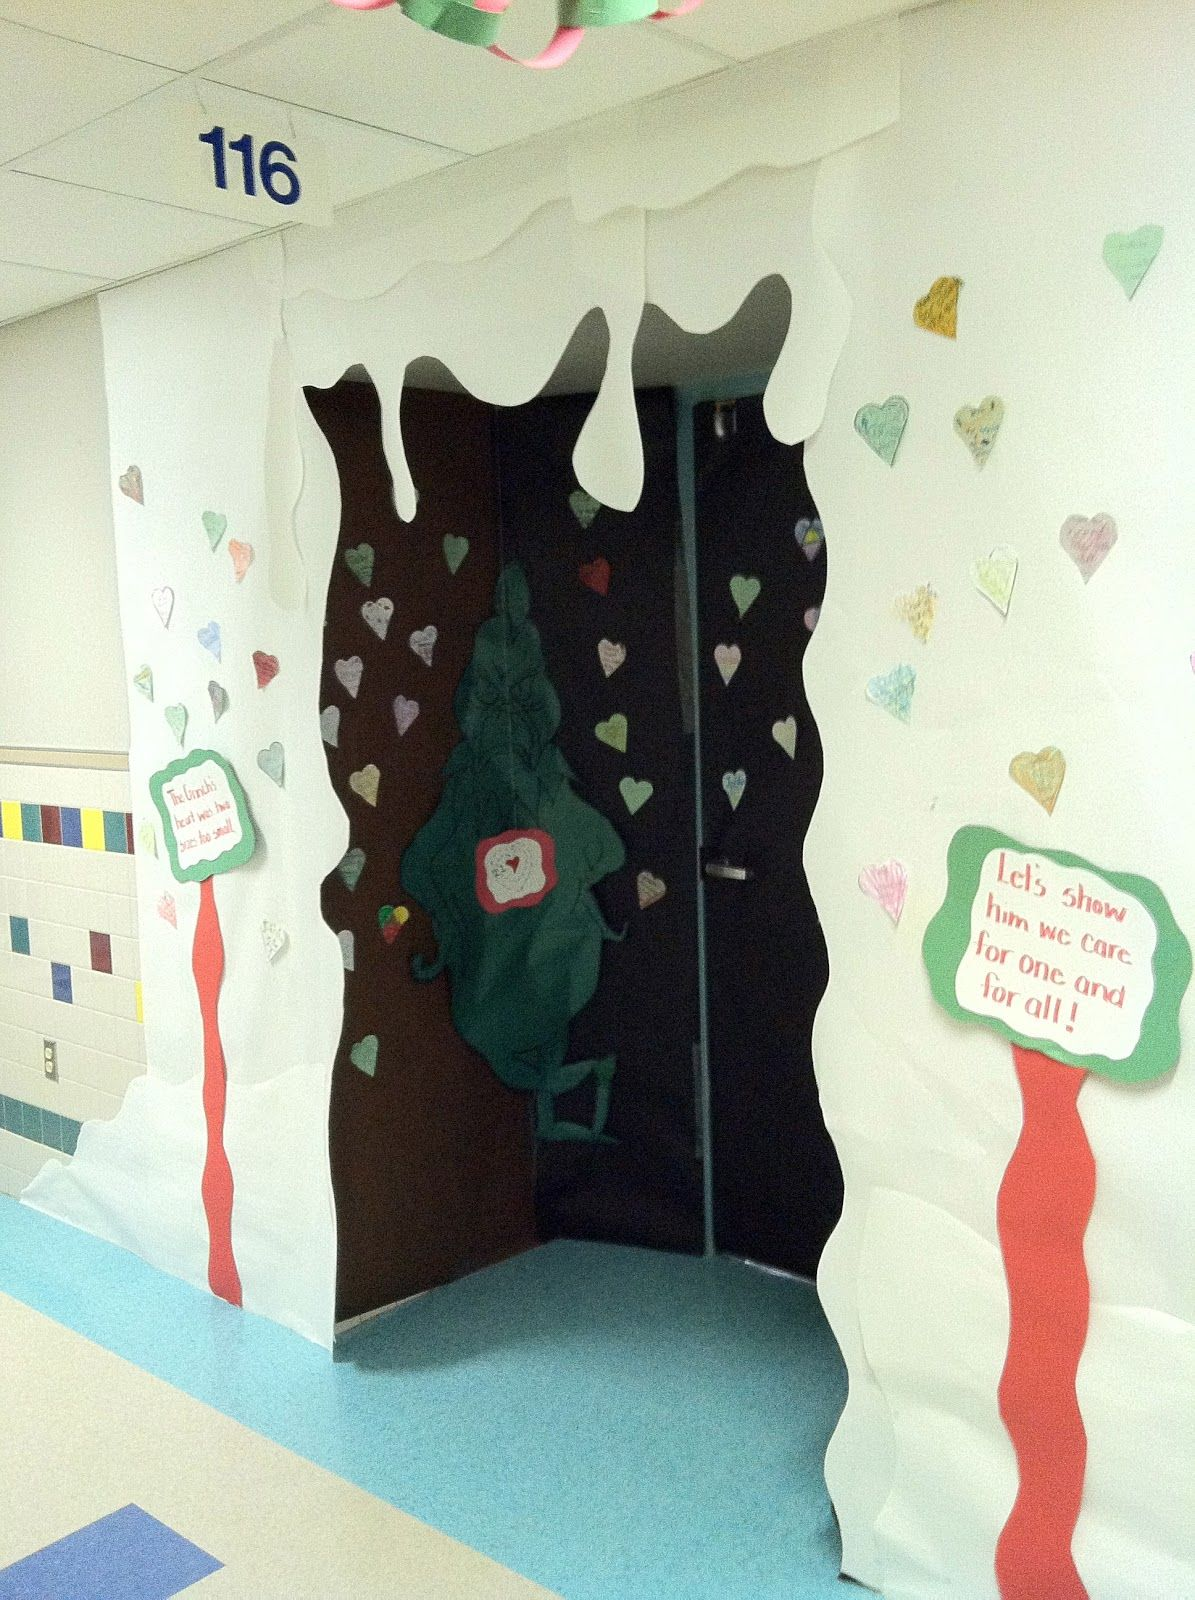 Grinch Cave Door Decorating Made From Kids Hearts Showing